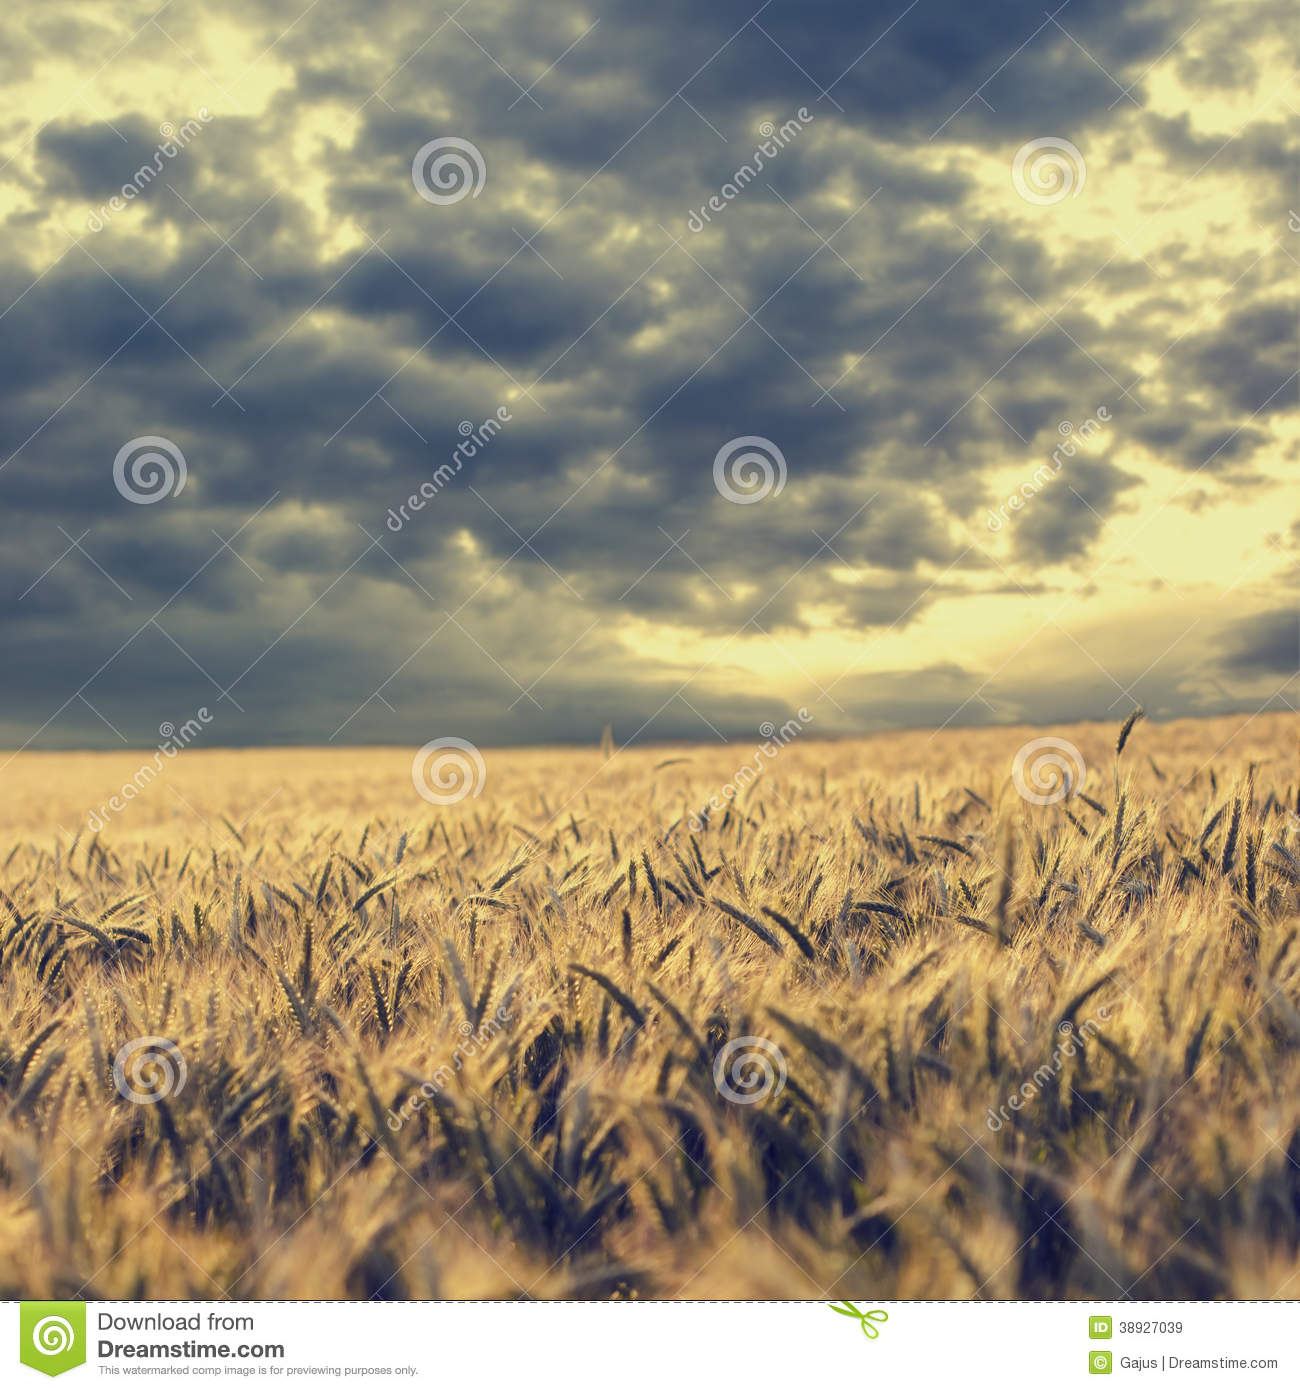 Storm Clouds Gathering Over A Wheat Field Stock Photo.